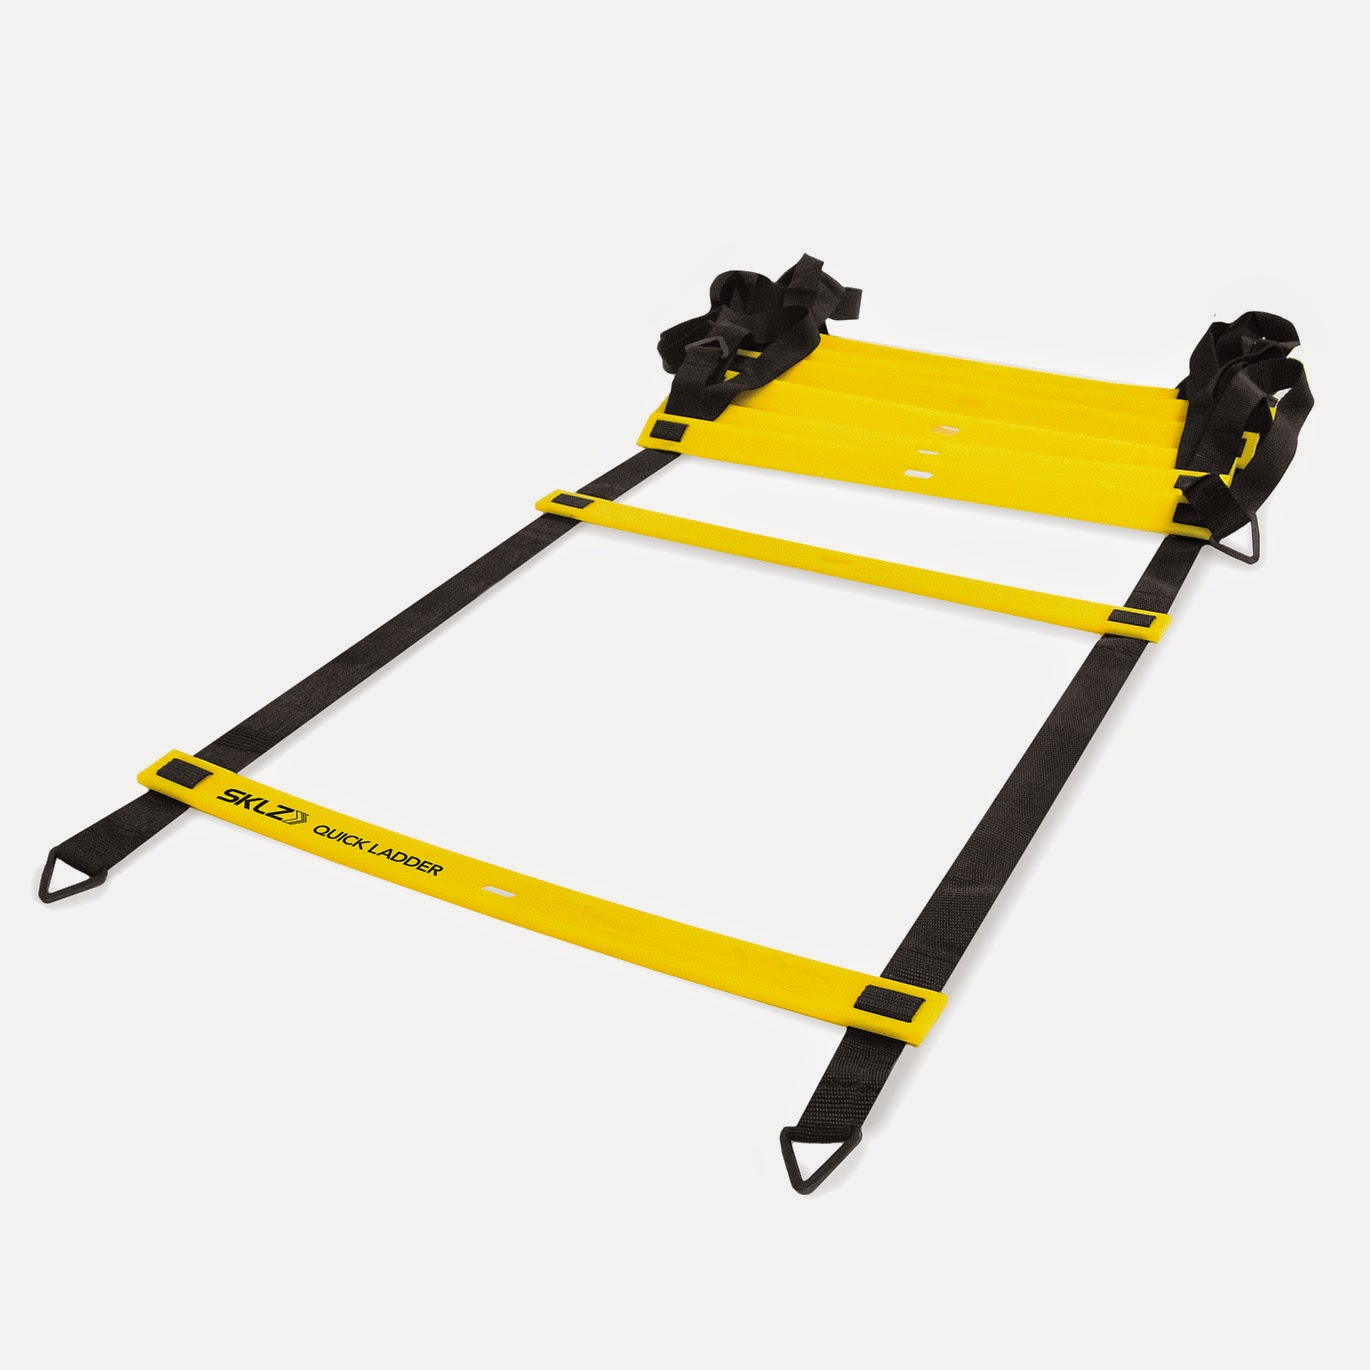 http://shop.sklz.com/performance/quick-ladder/invt/saqsl0102